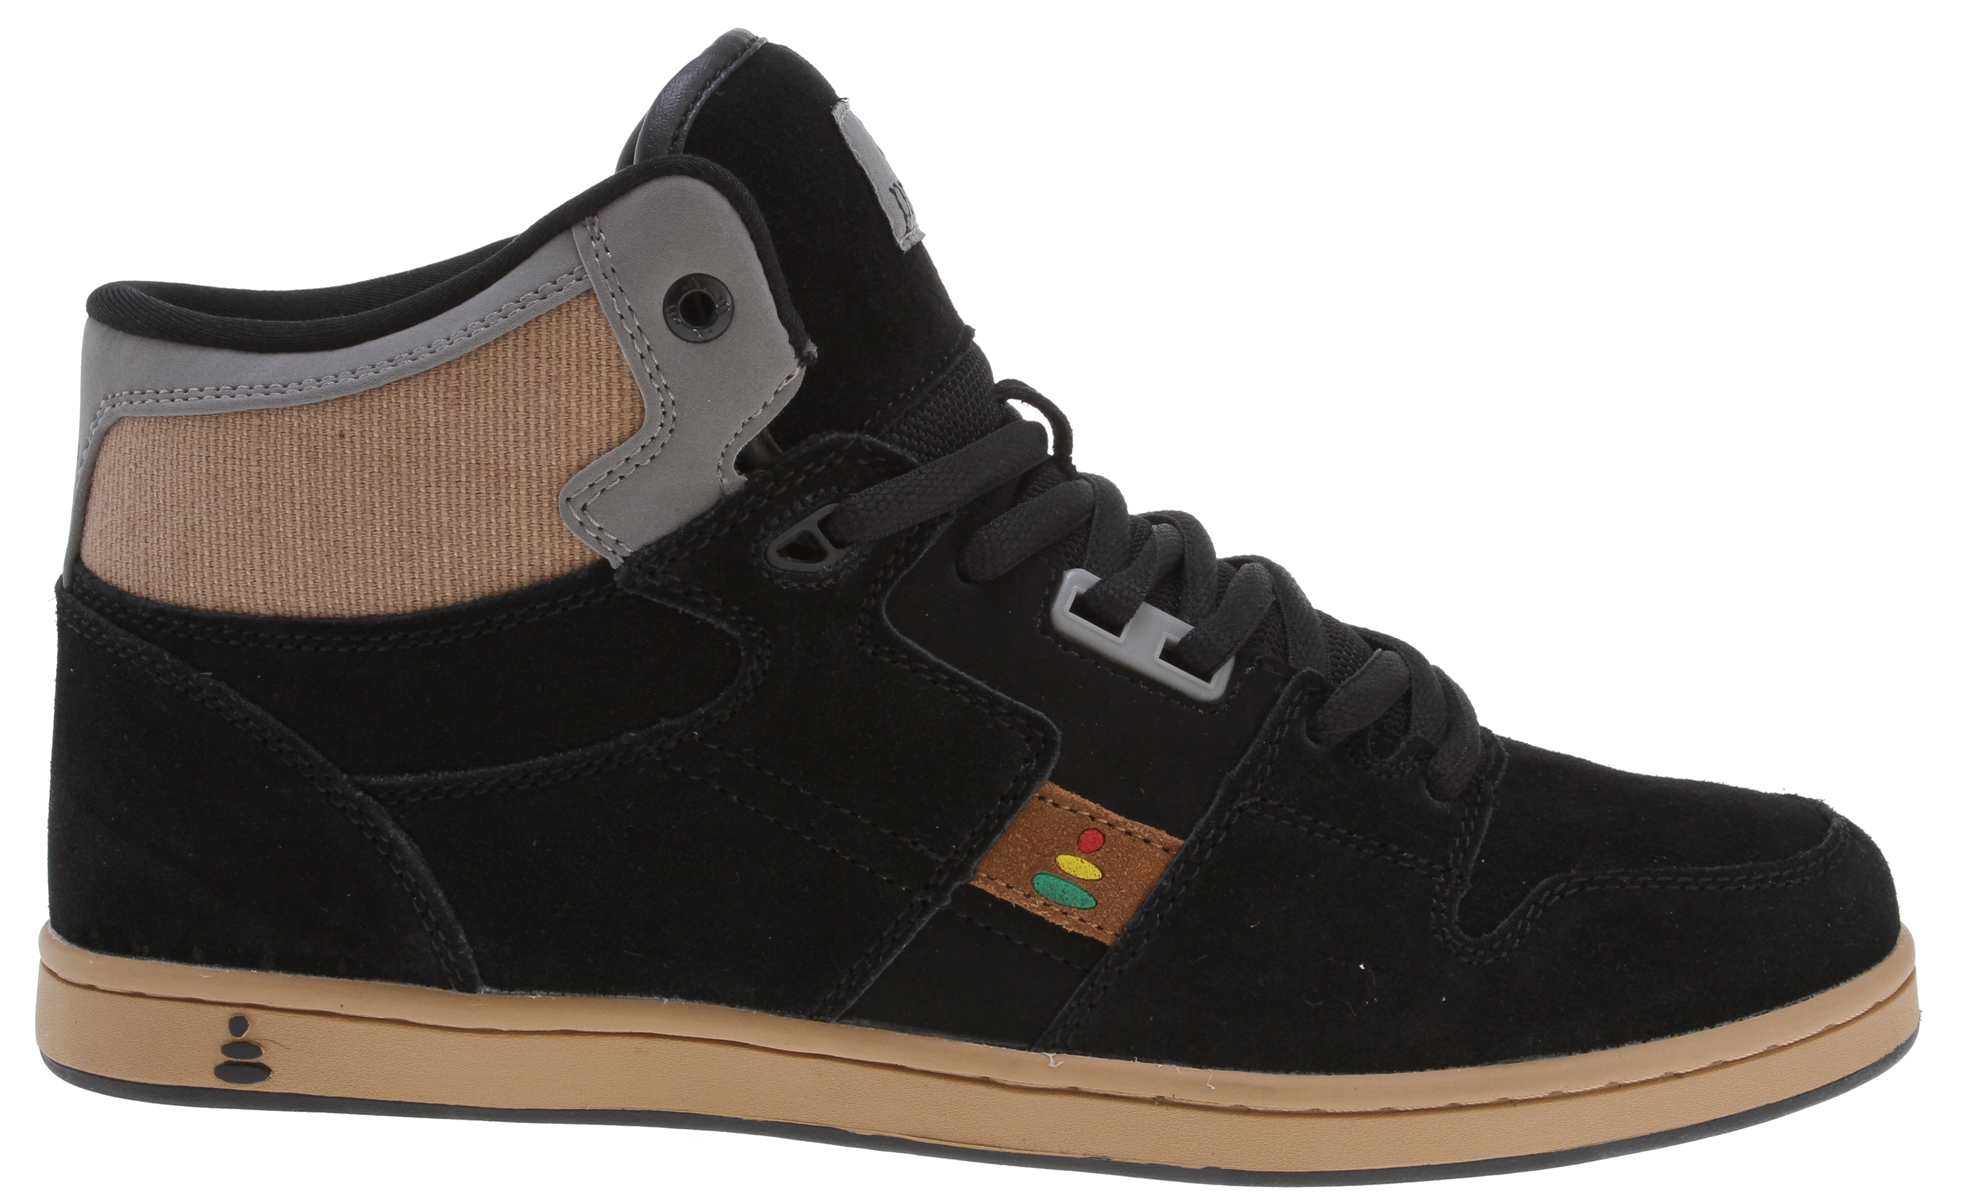 Skateboard Praxis is youthful lifestyle footwear dedicated to the essence of skateboarding. Praxis Footwear is action guided by purpose, and they believe in this for their company and their lives. Praxis promotes a product and outlook that preserves freedom of expression and lifestyle, if that sounds like your cup of tea then drink up.Key Features of the Praxis Freestyle Skate Shoes Tan Suede/Hemp:  Synthetic upper  Synthetic lining  Rubber sole - $36.95